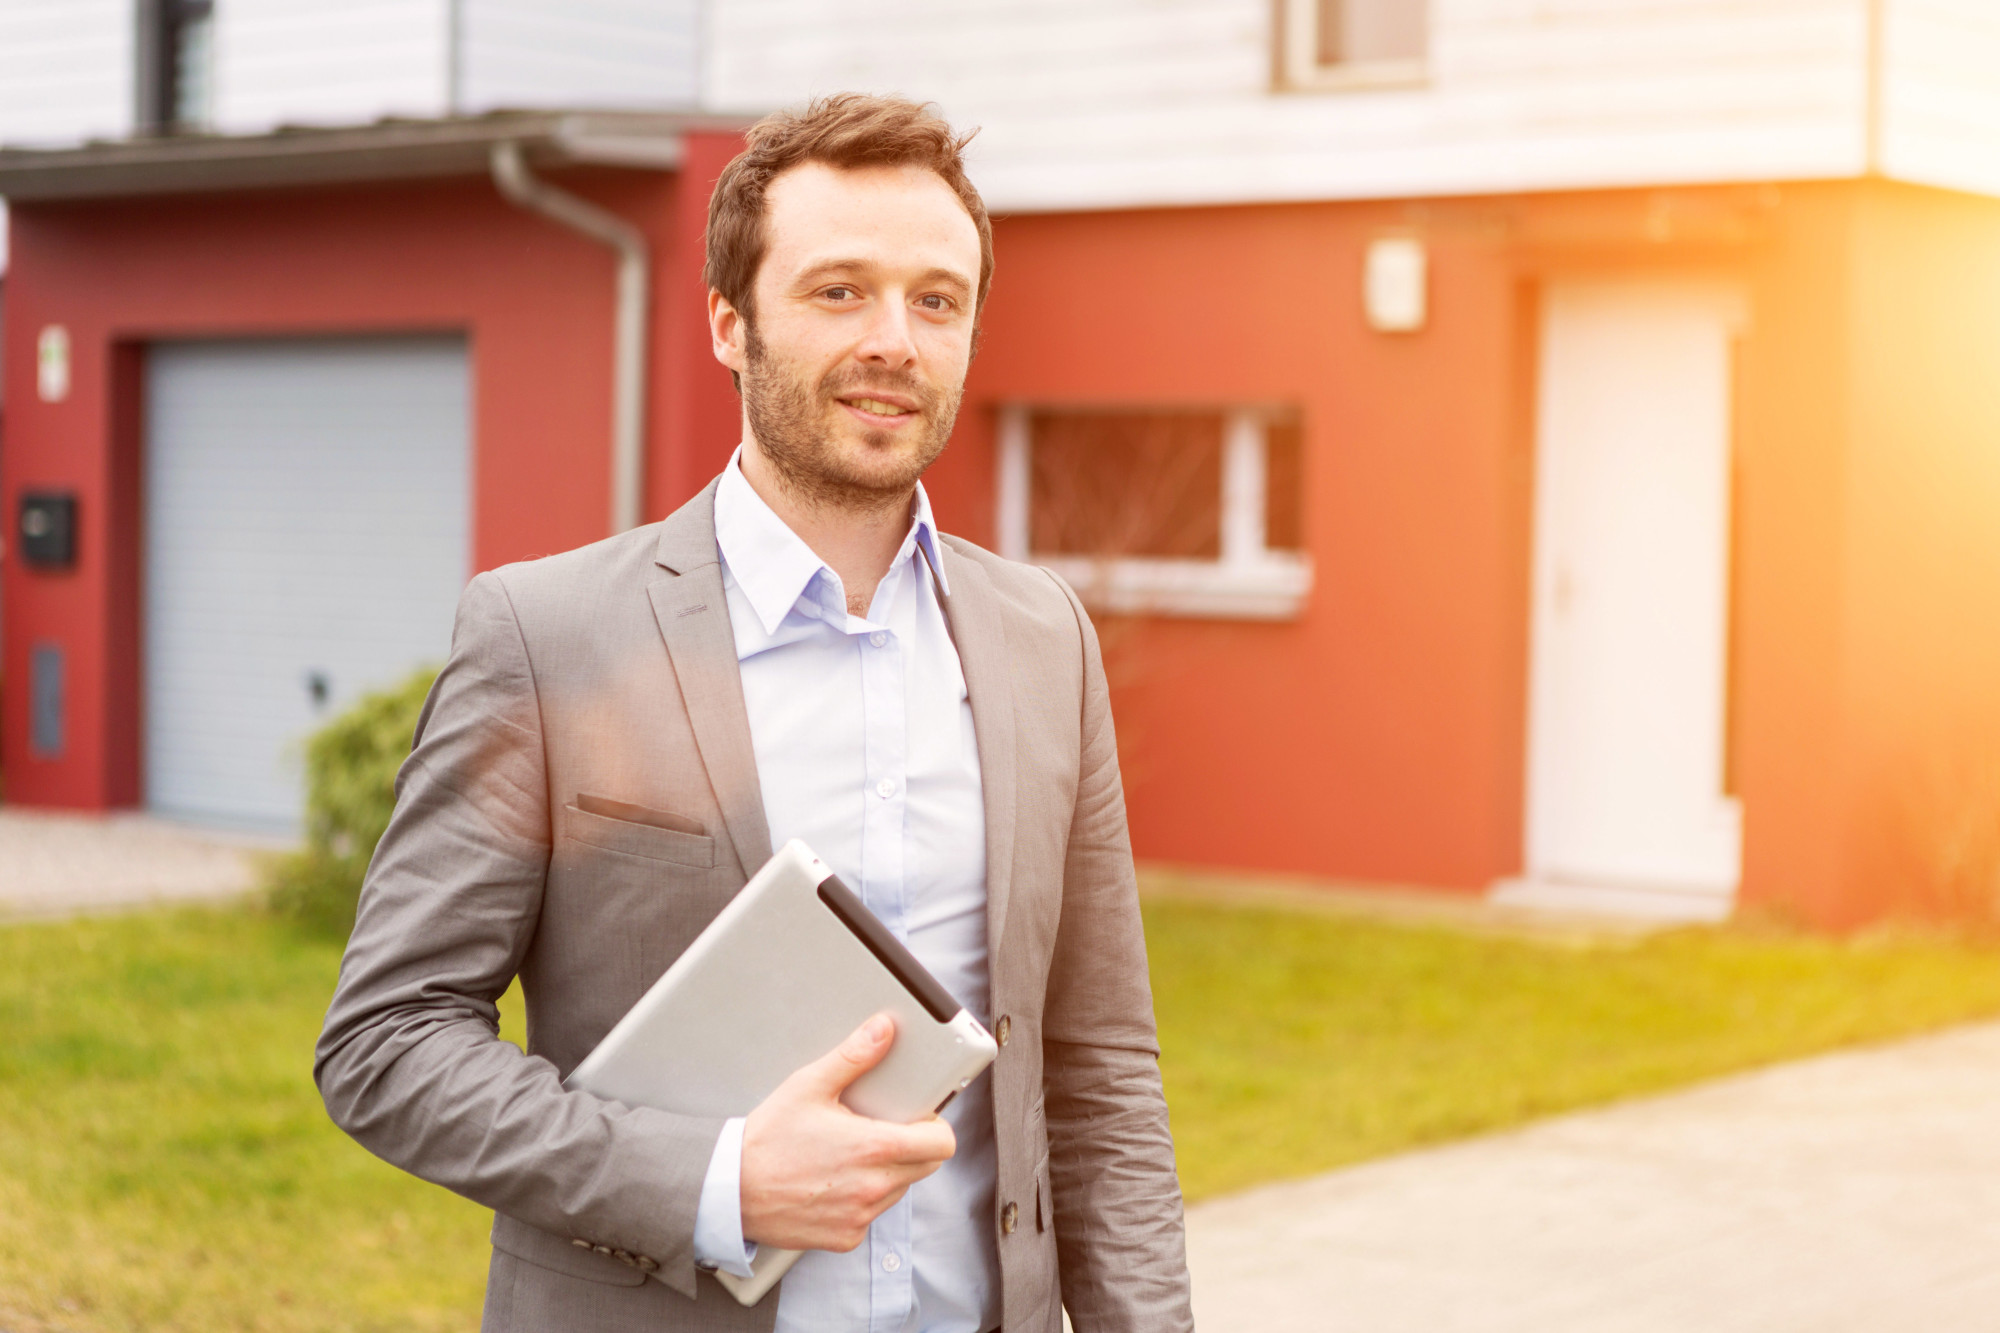 How Do I Choose the Best Real Estate Agent in My Local Area?